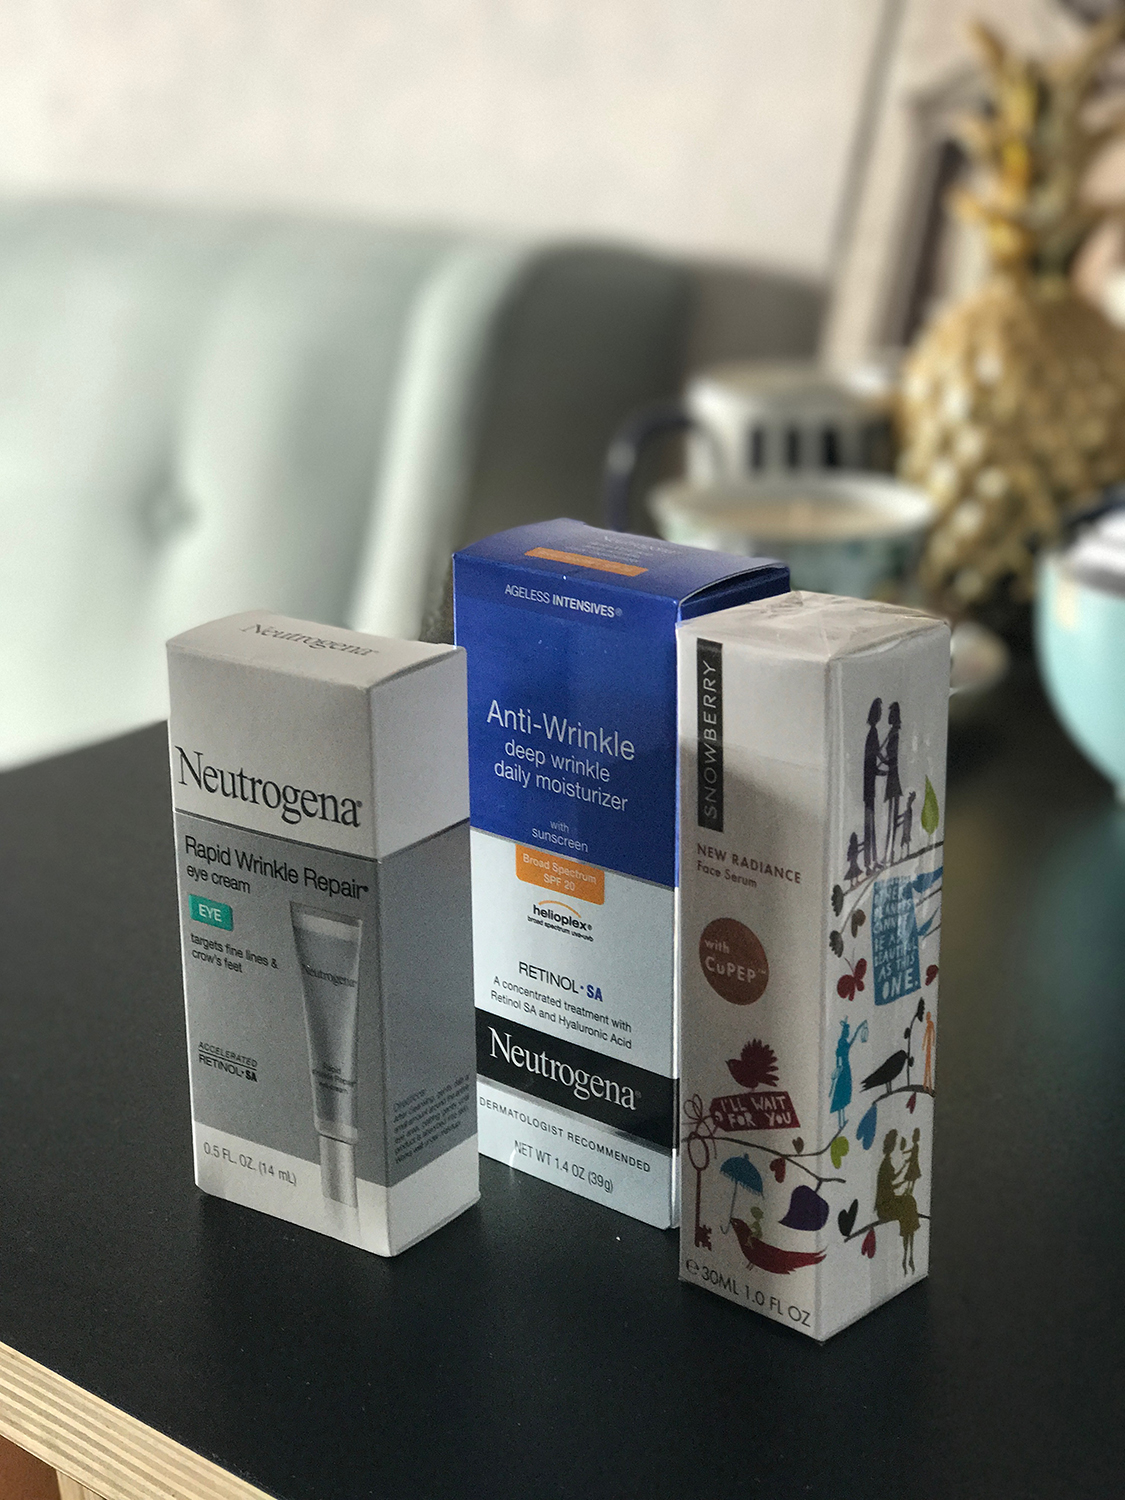 I vary the products I use depending on what I think is happening with my skin. I'm currently using drug-store stuff like Neutrogena's Retinol treatment range; a serum from New Zealand company Snowberry. I've also been doing the Korean skin-regimen of 'layering' various creams so after the serum, I put on a night-cream (varies depending on what's on sale) and finally a facial oil (Midnight Recovery Concentrate by Khiels).